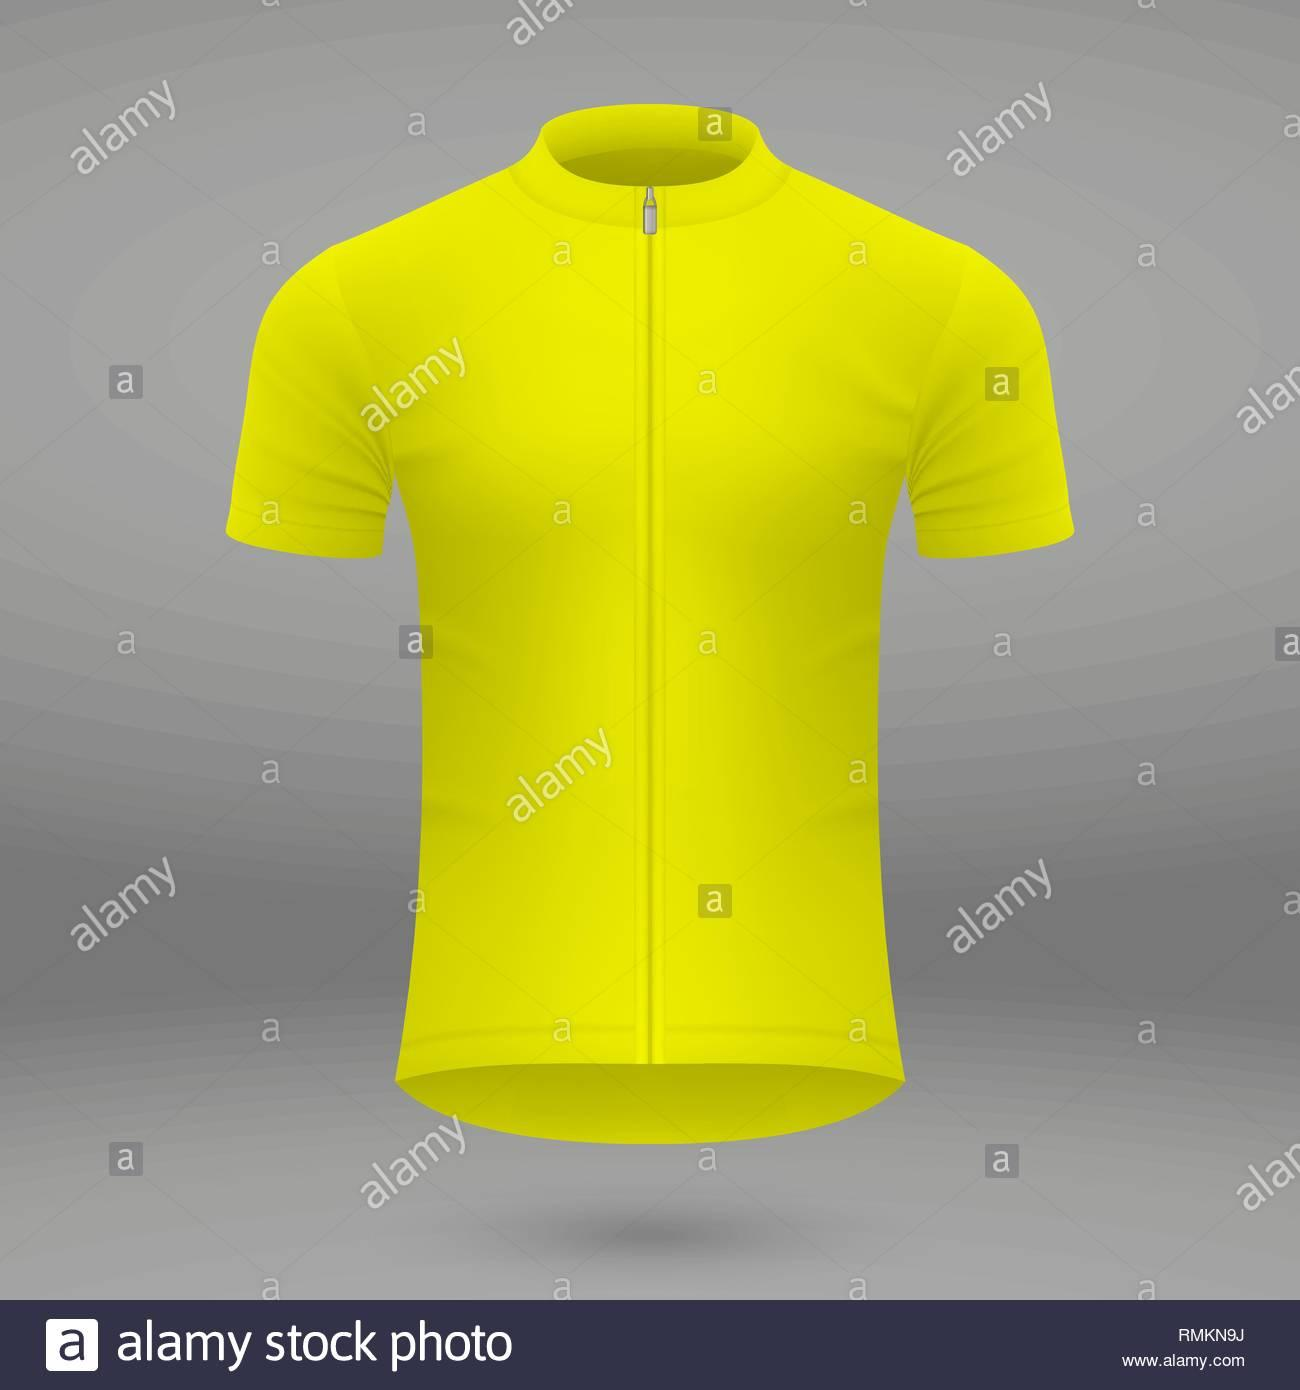 Cycling Shirt Template